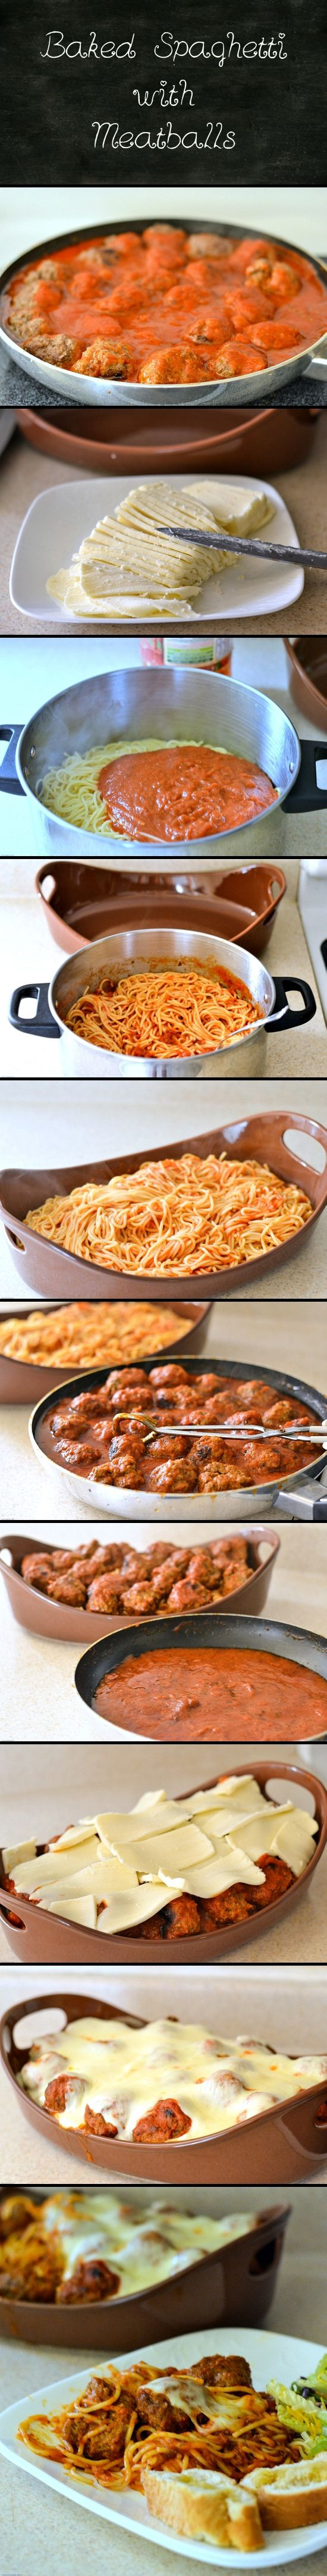 Baked Spaghetti with Meatballs -www.flouronmyface.com